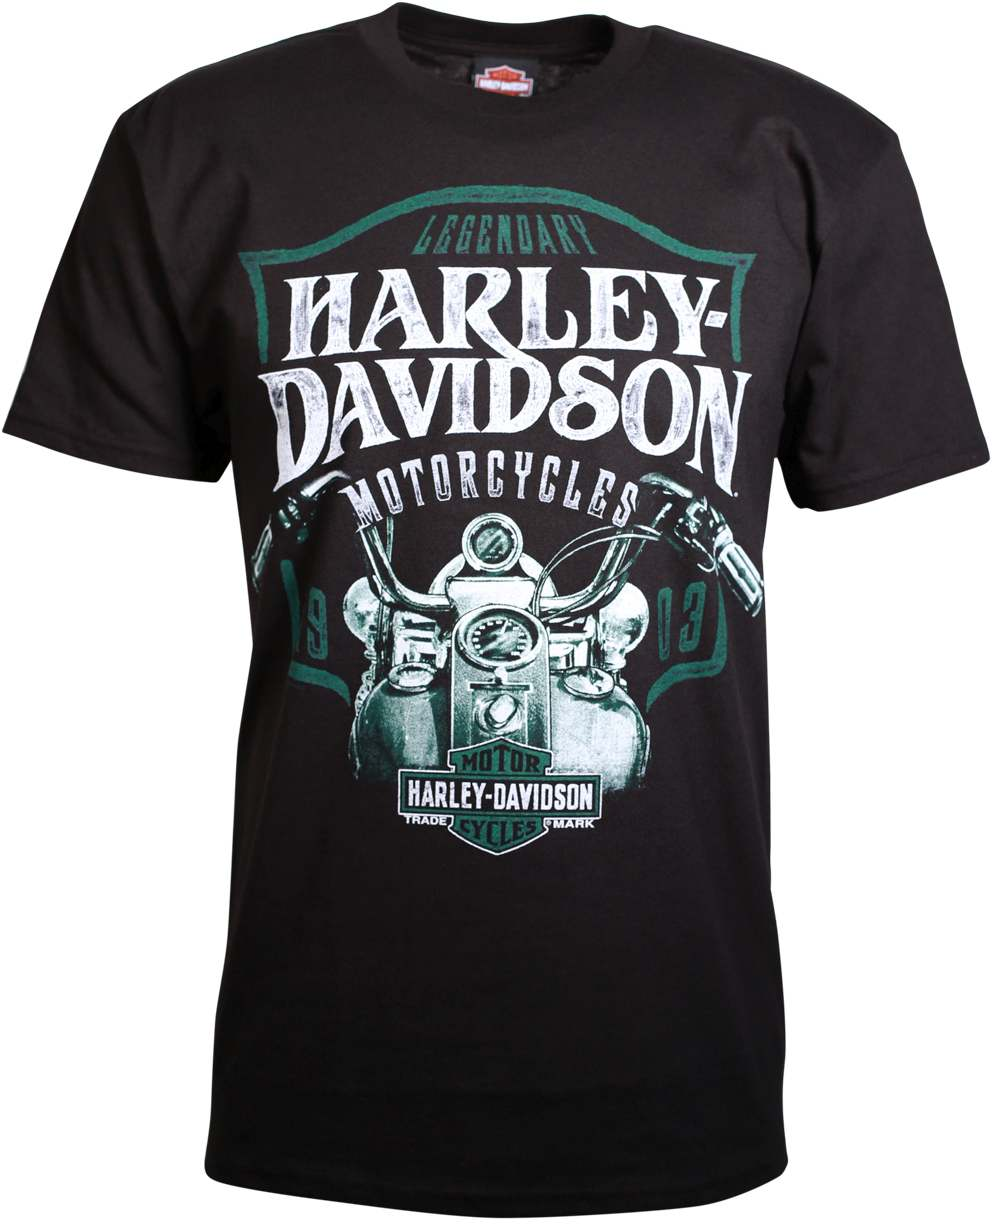 harley davidson t shirt precise performance at thunderbike. Black Bedroom Furniture Sets. Home Design Ideas